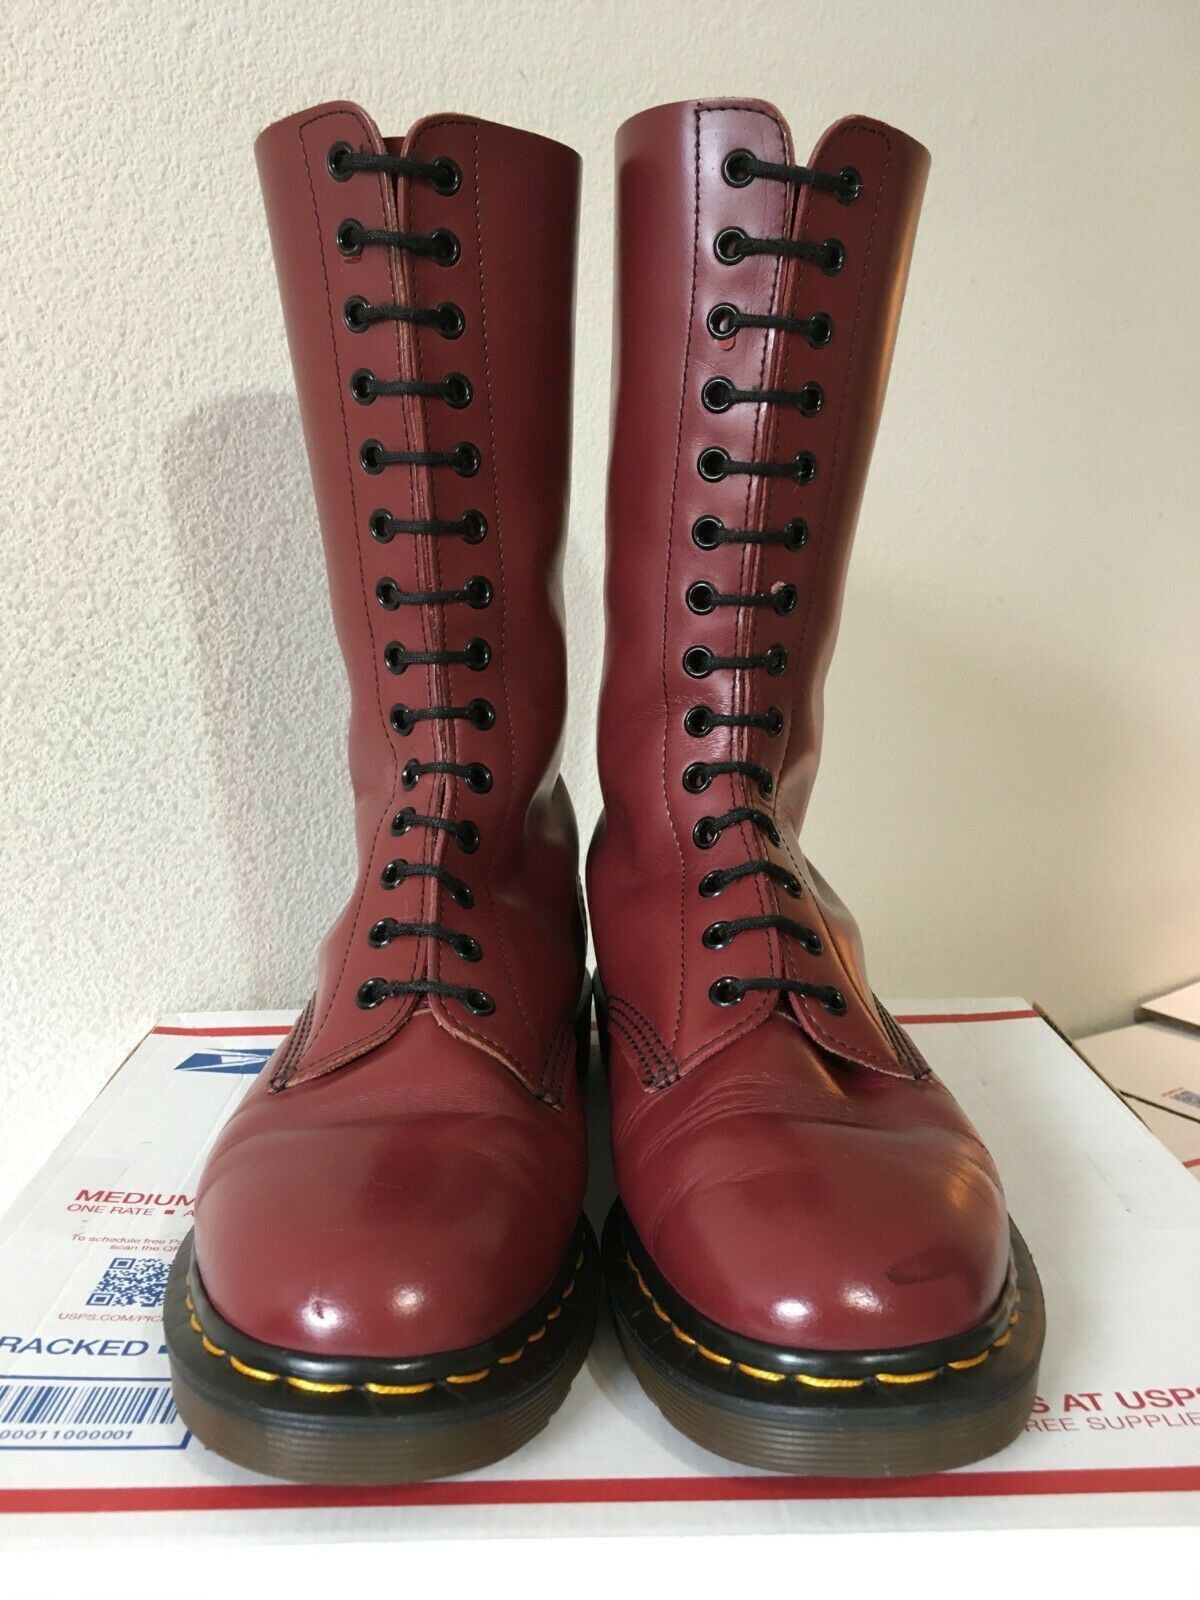 90s Vintage Dr Martens 9 boots ENGLAND mie 14-eye oxblood 1914 cherry red quilon